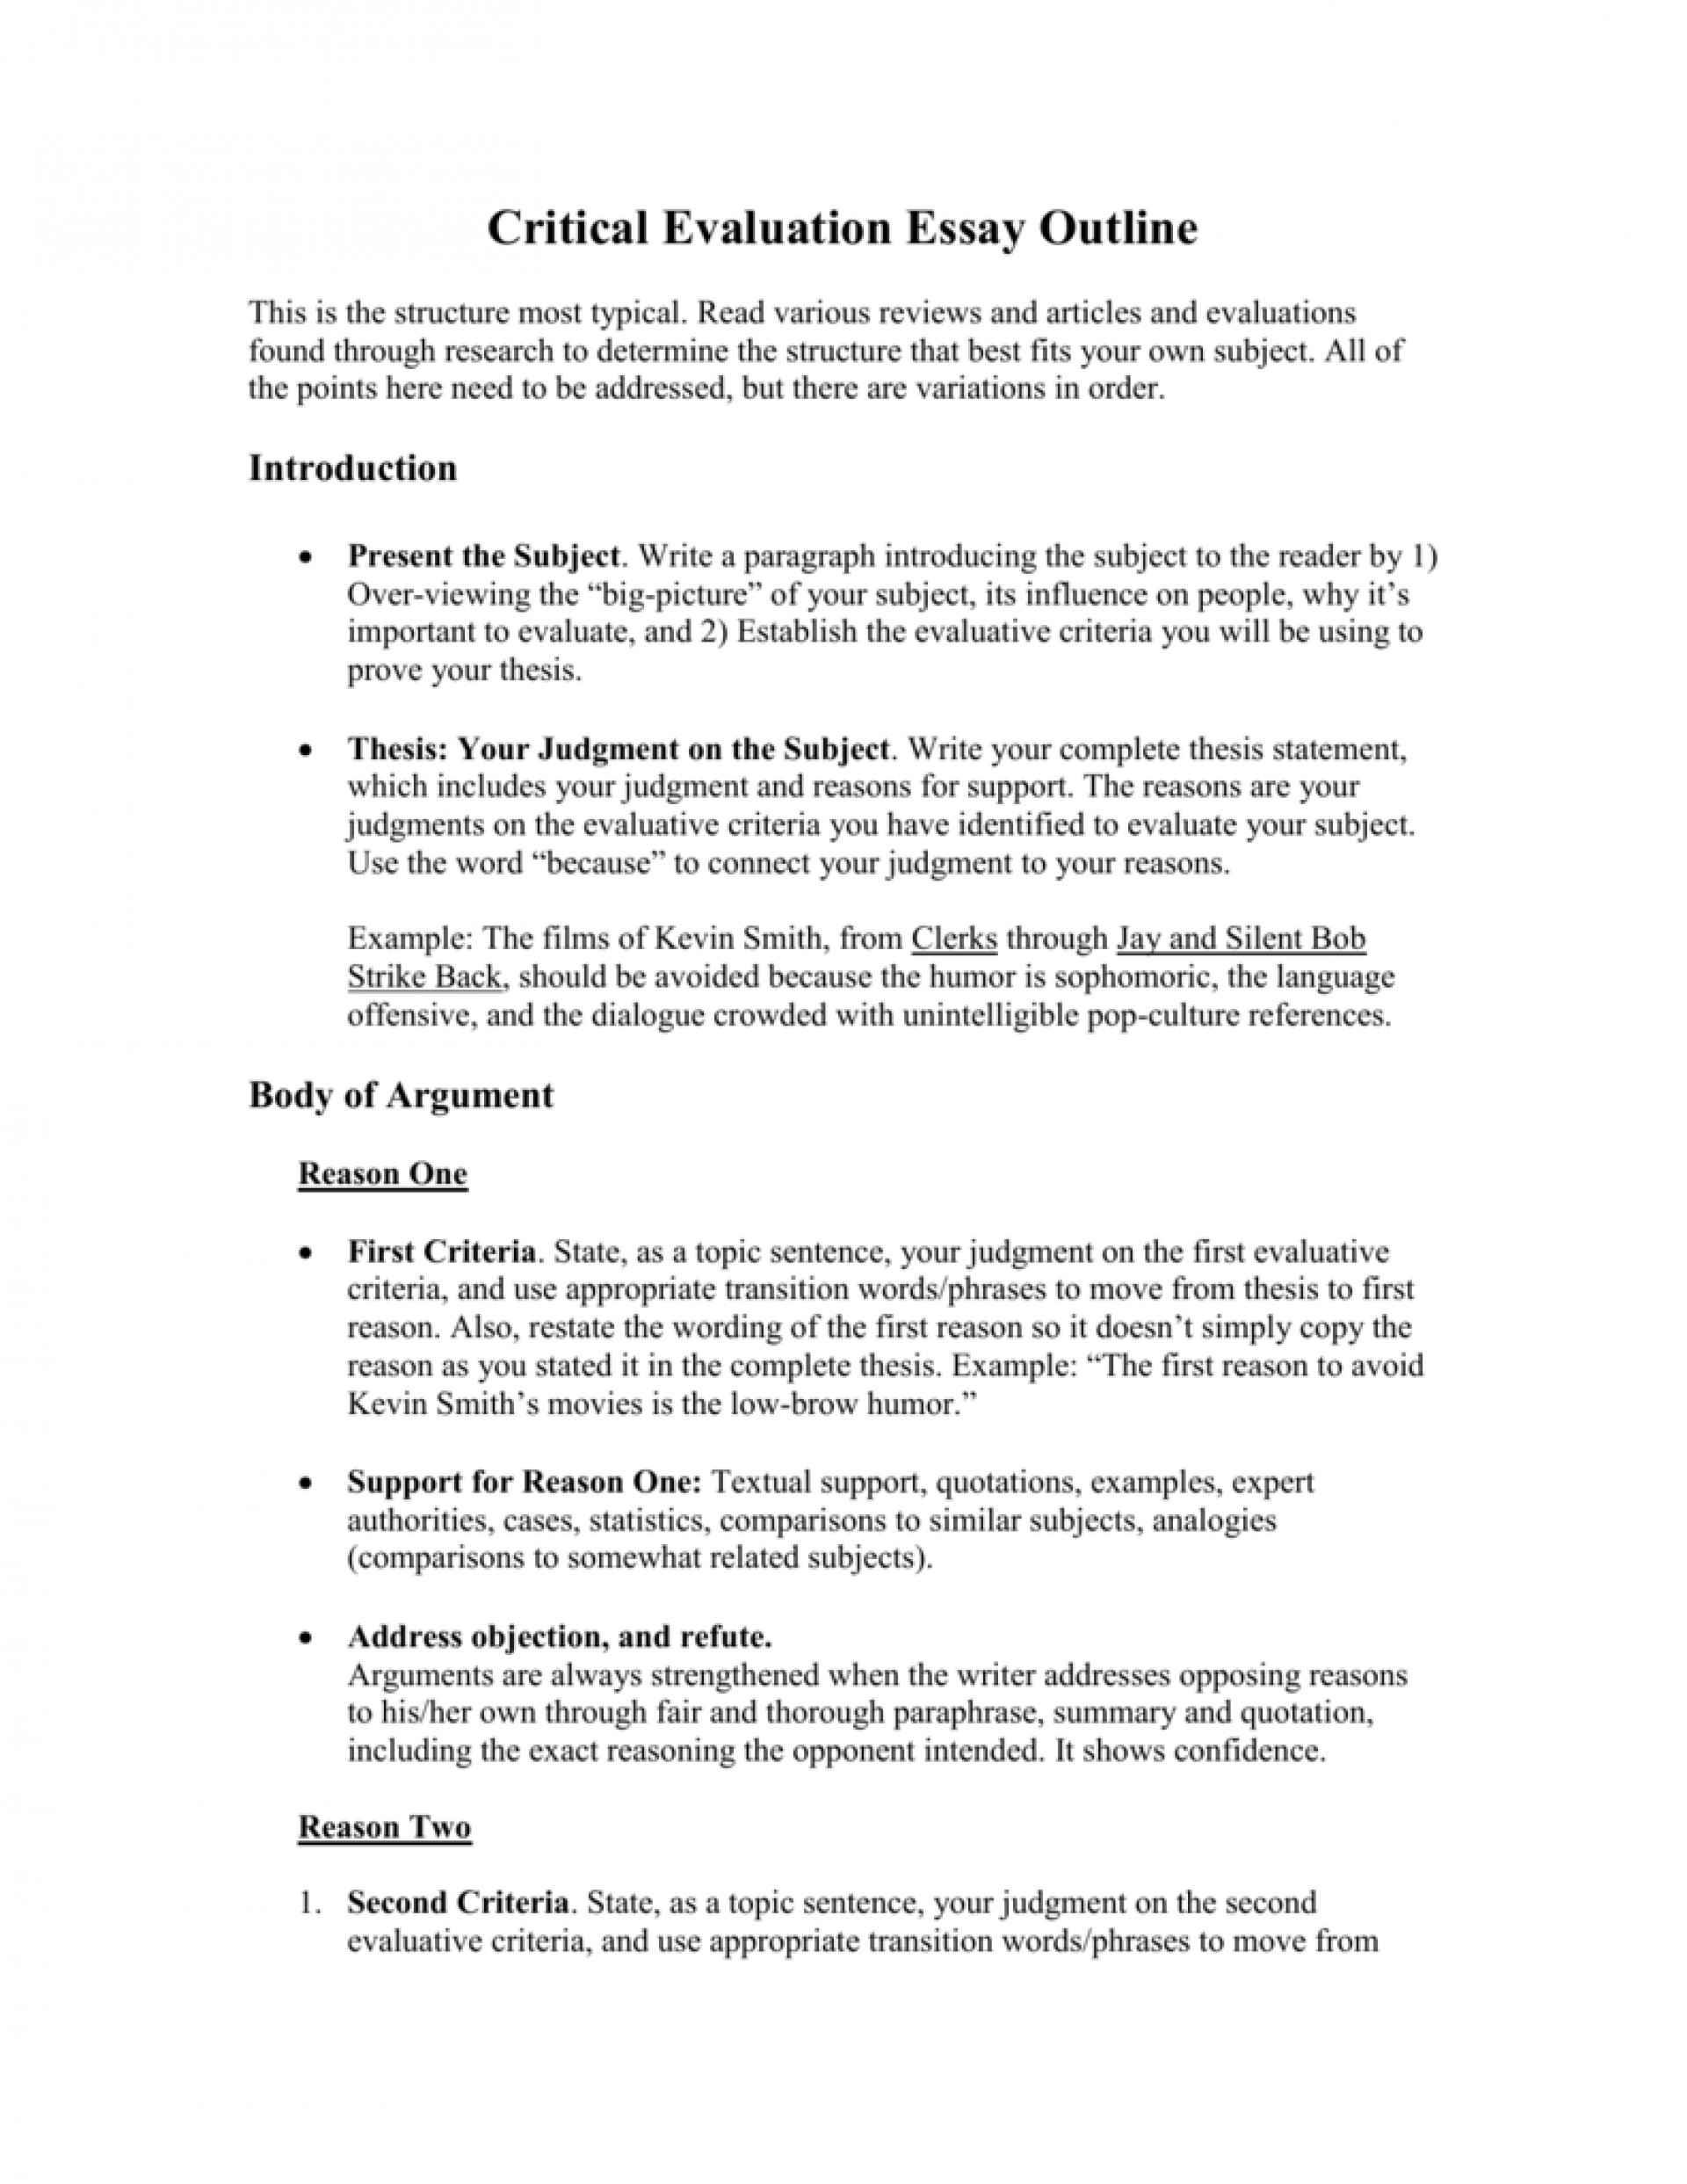 004 Outline Essay 007278317 1 Fascinating About Immigration Tok Structure Definition 1920